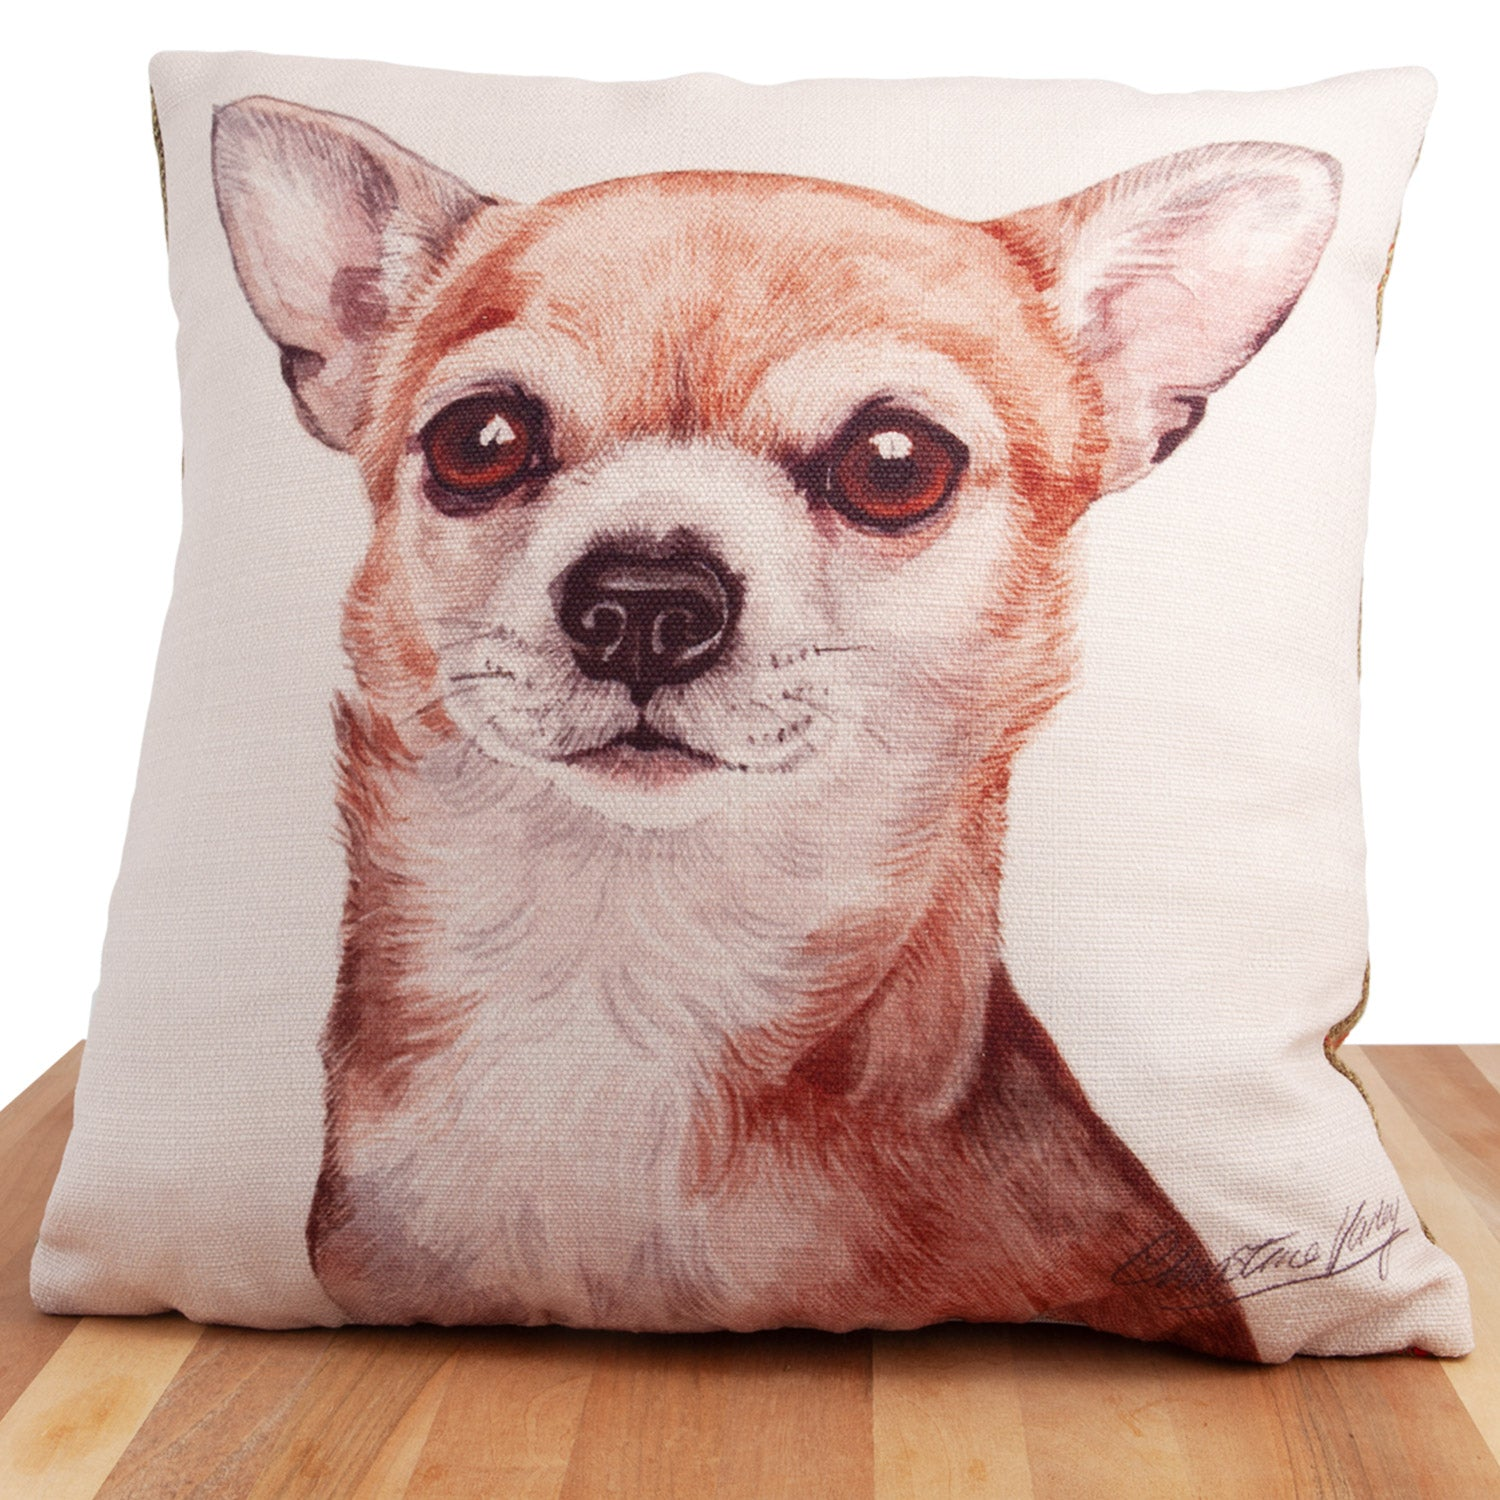 Dog Lover Gifts available at Dog Krazy Gifts. Chihuahua Cushion, part of our Christine Varley collection – available at www.dogkrazygifts.co.uk